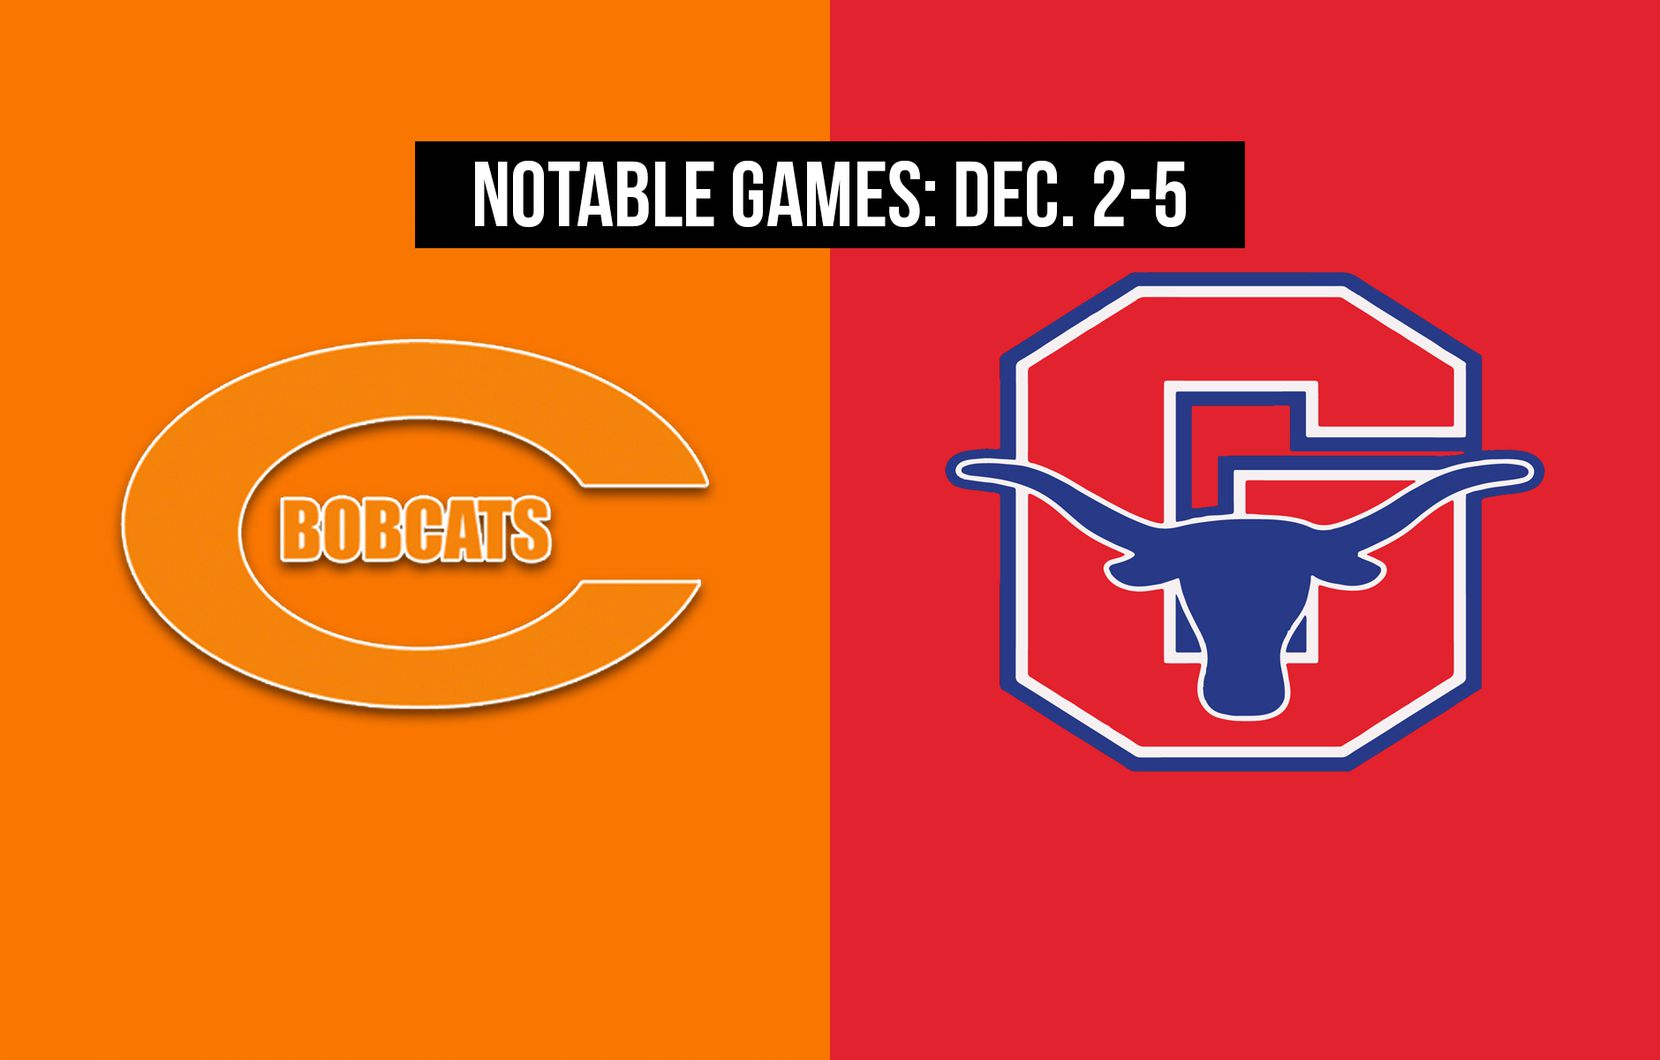 Notable games for the week of Dec. 2-5 of the 2020 season: Celina vs. Graham.